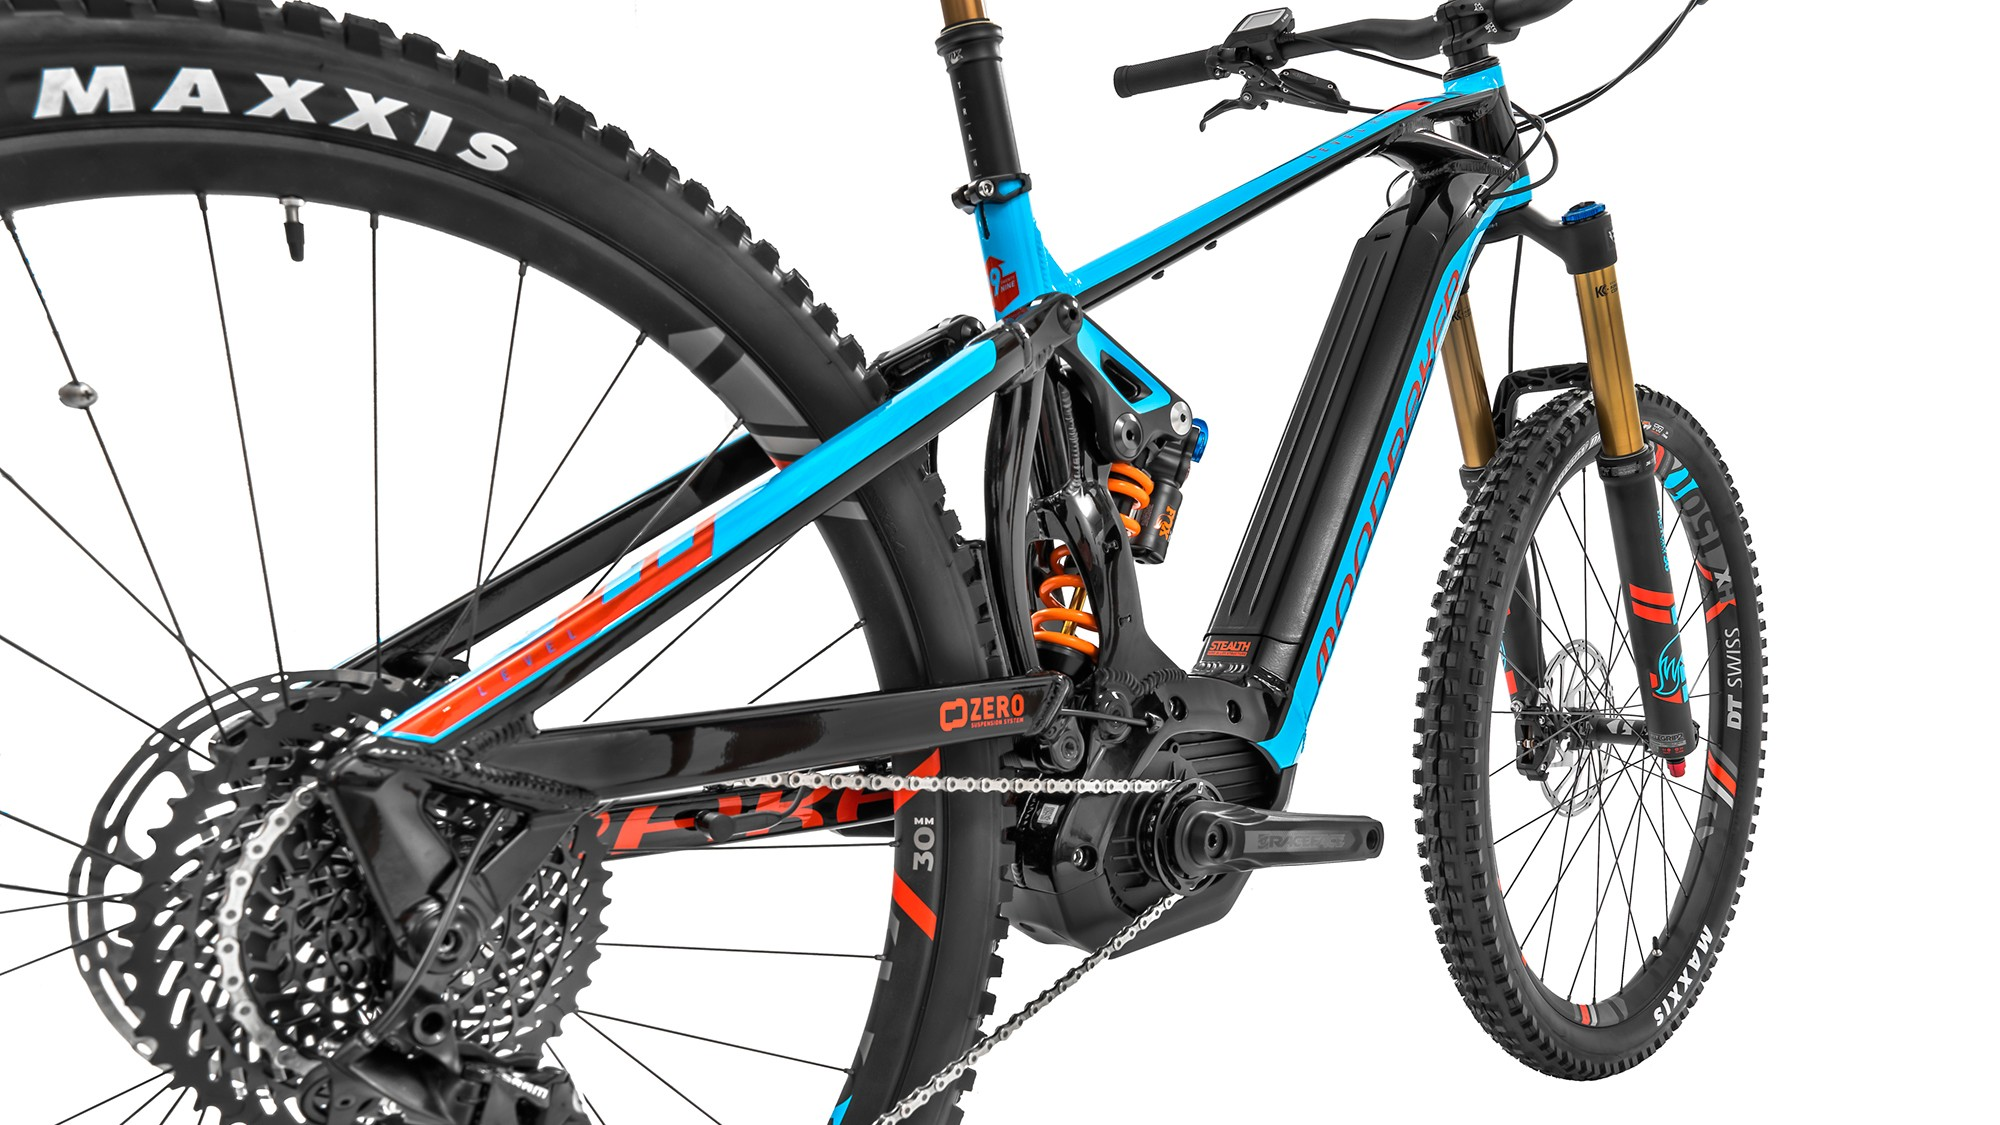 The higher-end RR comes with a Fox DHX2 2Pos Lever Factory Kashima rear shock and top end Factory GRIP 2 level fork